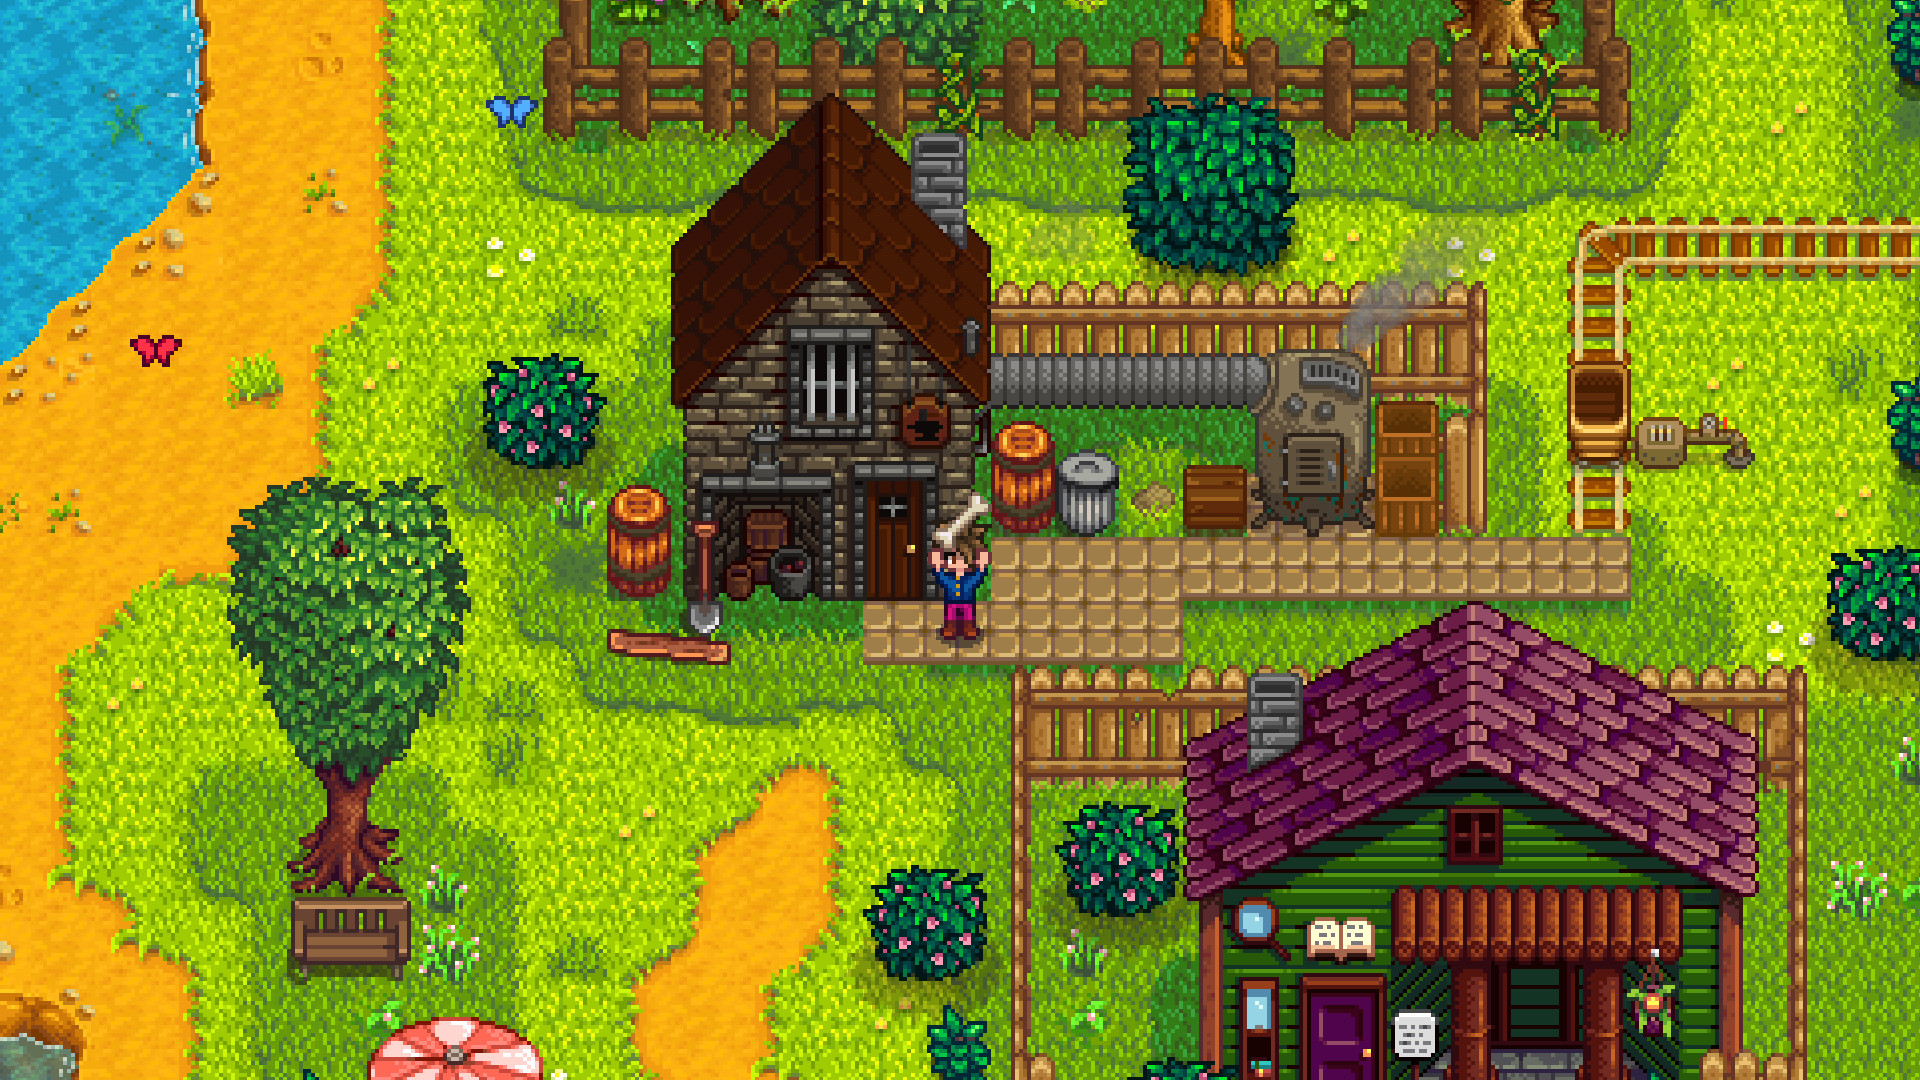 Image of Stardew Valley Repack PC Game Full Version Free Download